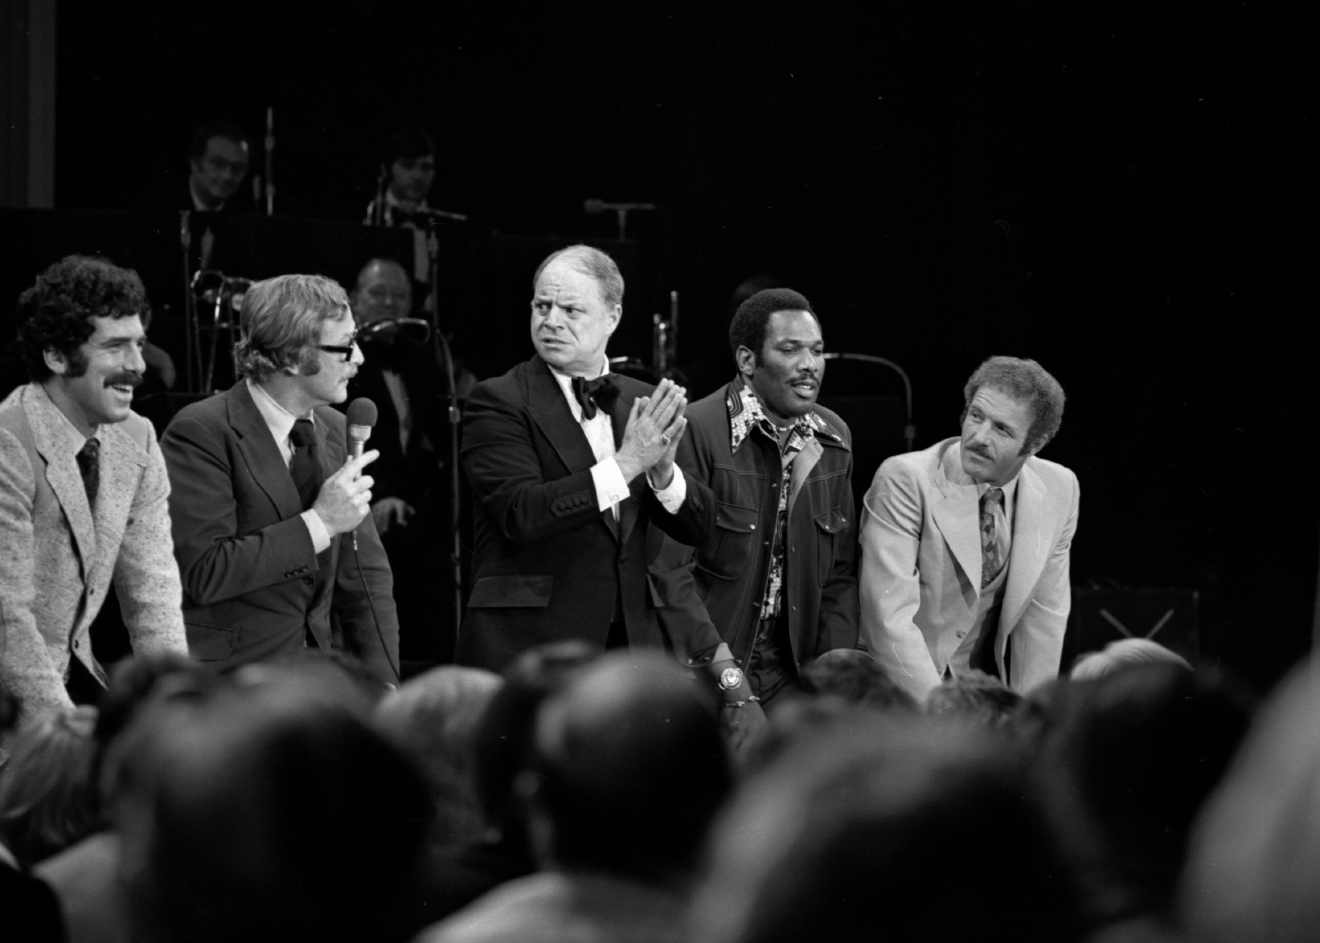 Don Rickles tapes a TV program at Caesars Palace on Nov. 1, 1975. [Las Vegas News Bureau file photo]